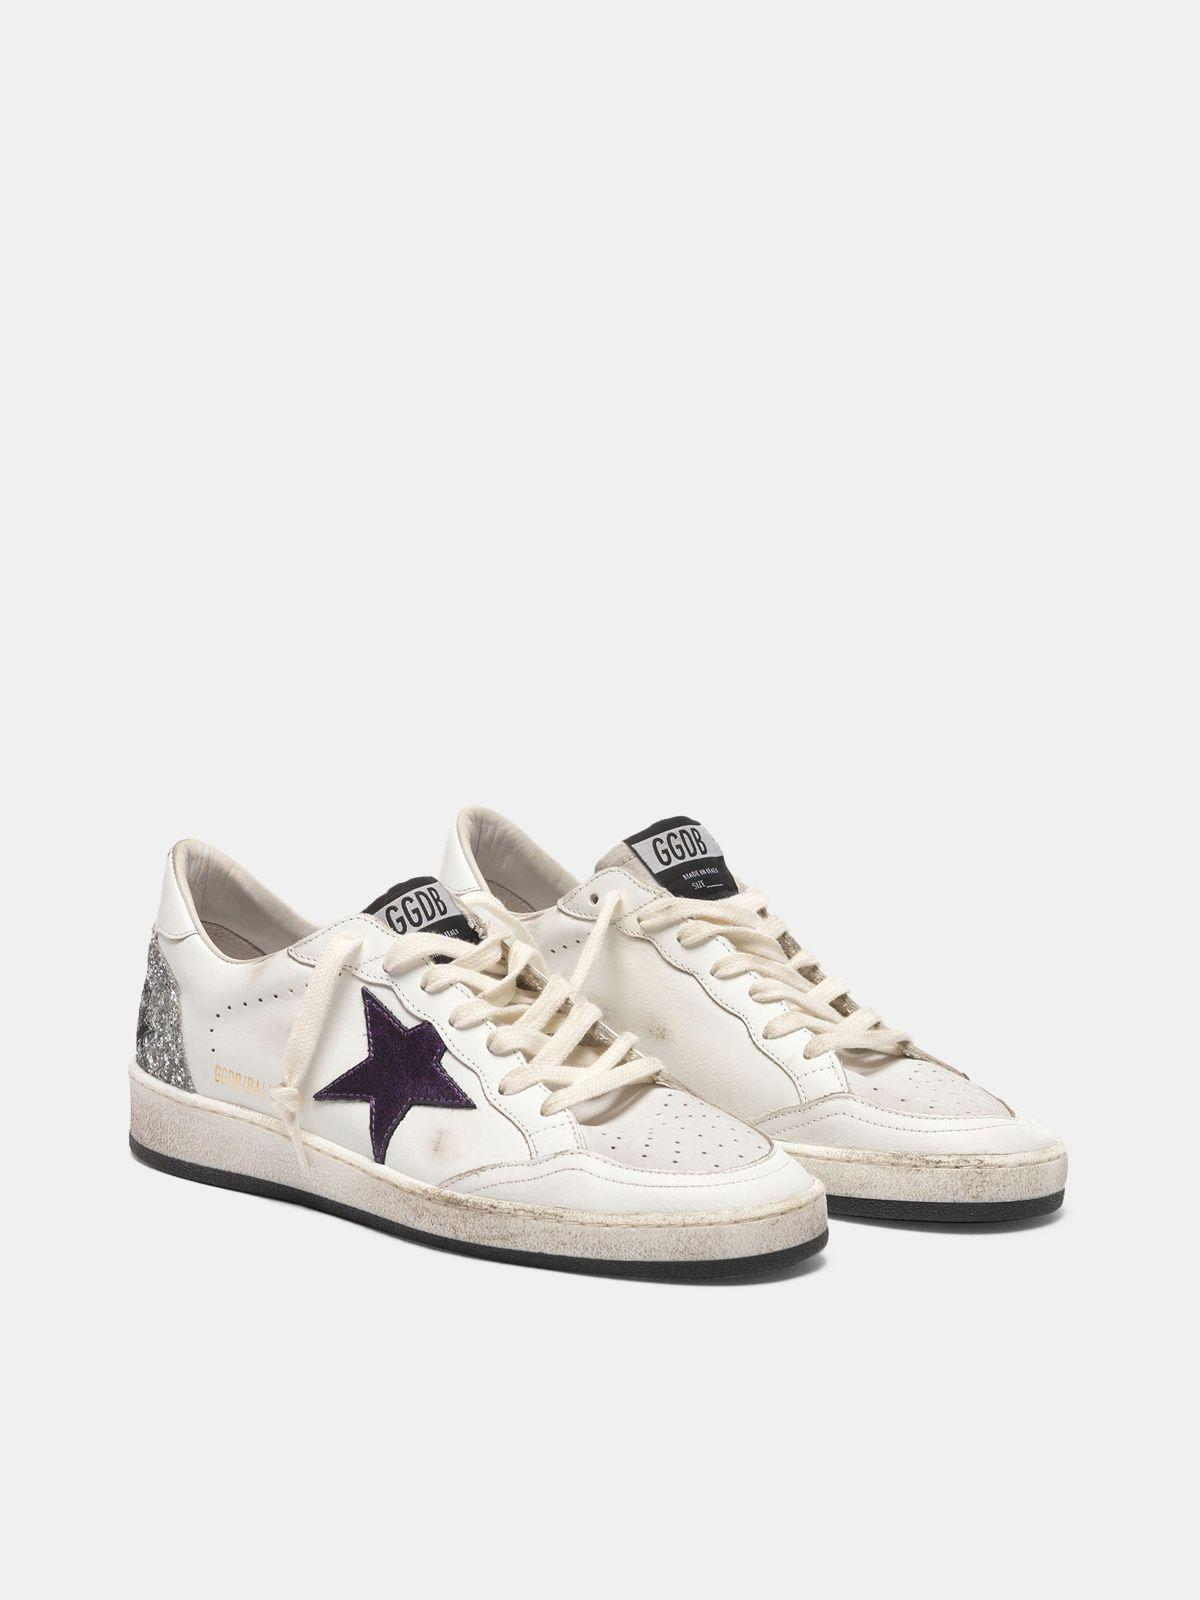 Ball Star sneakers with metallic purple star and glitter back 2